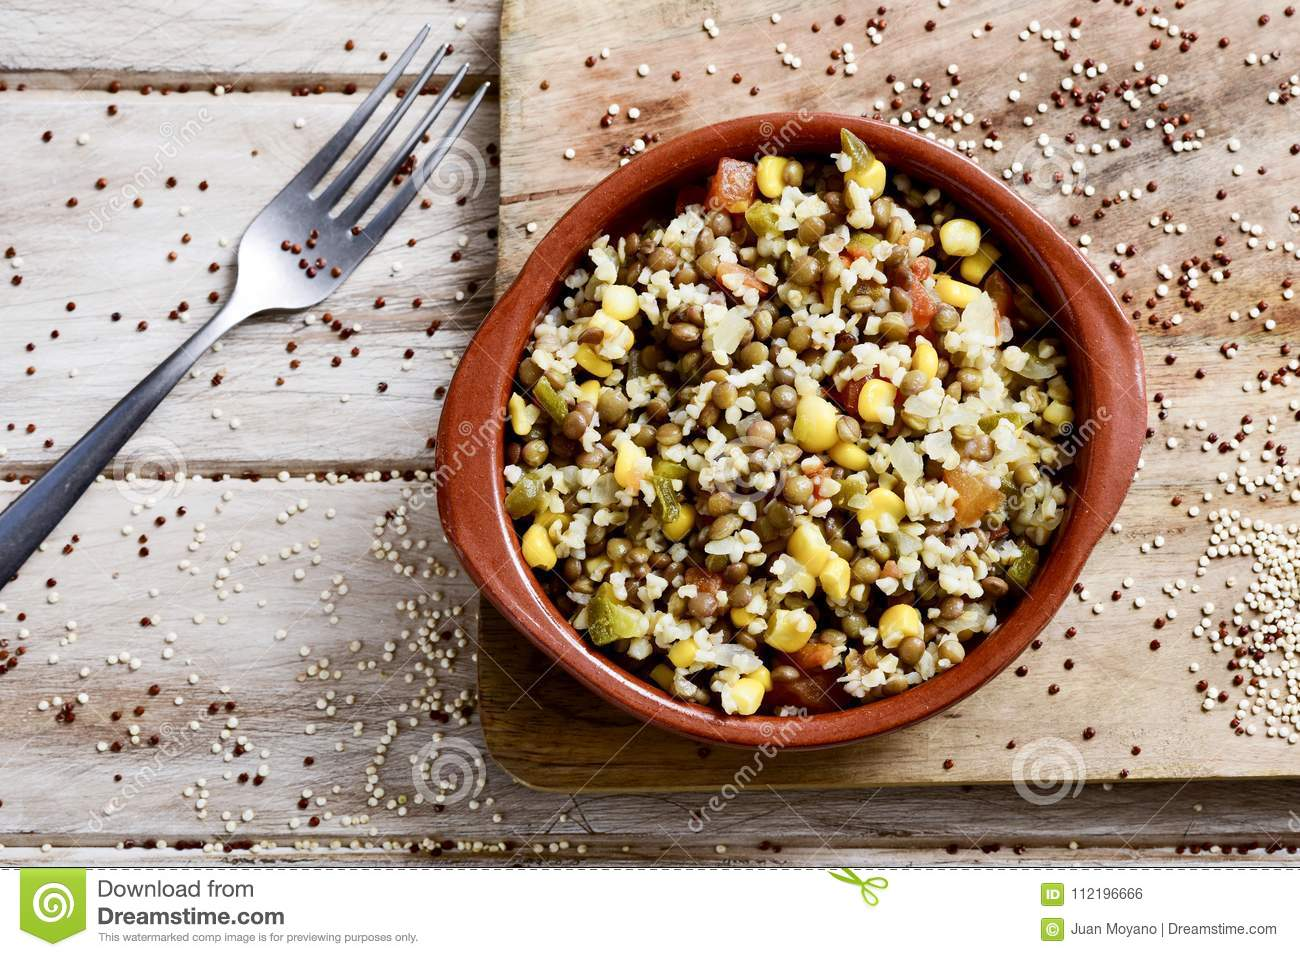 Bulgur Salad With Lentils And Other Vegetables Stock Photo